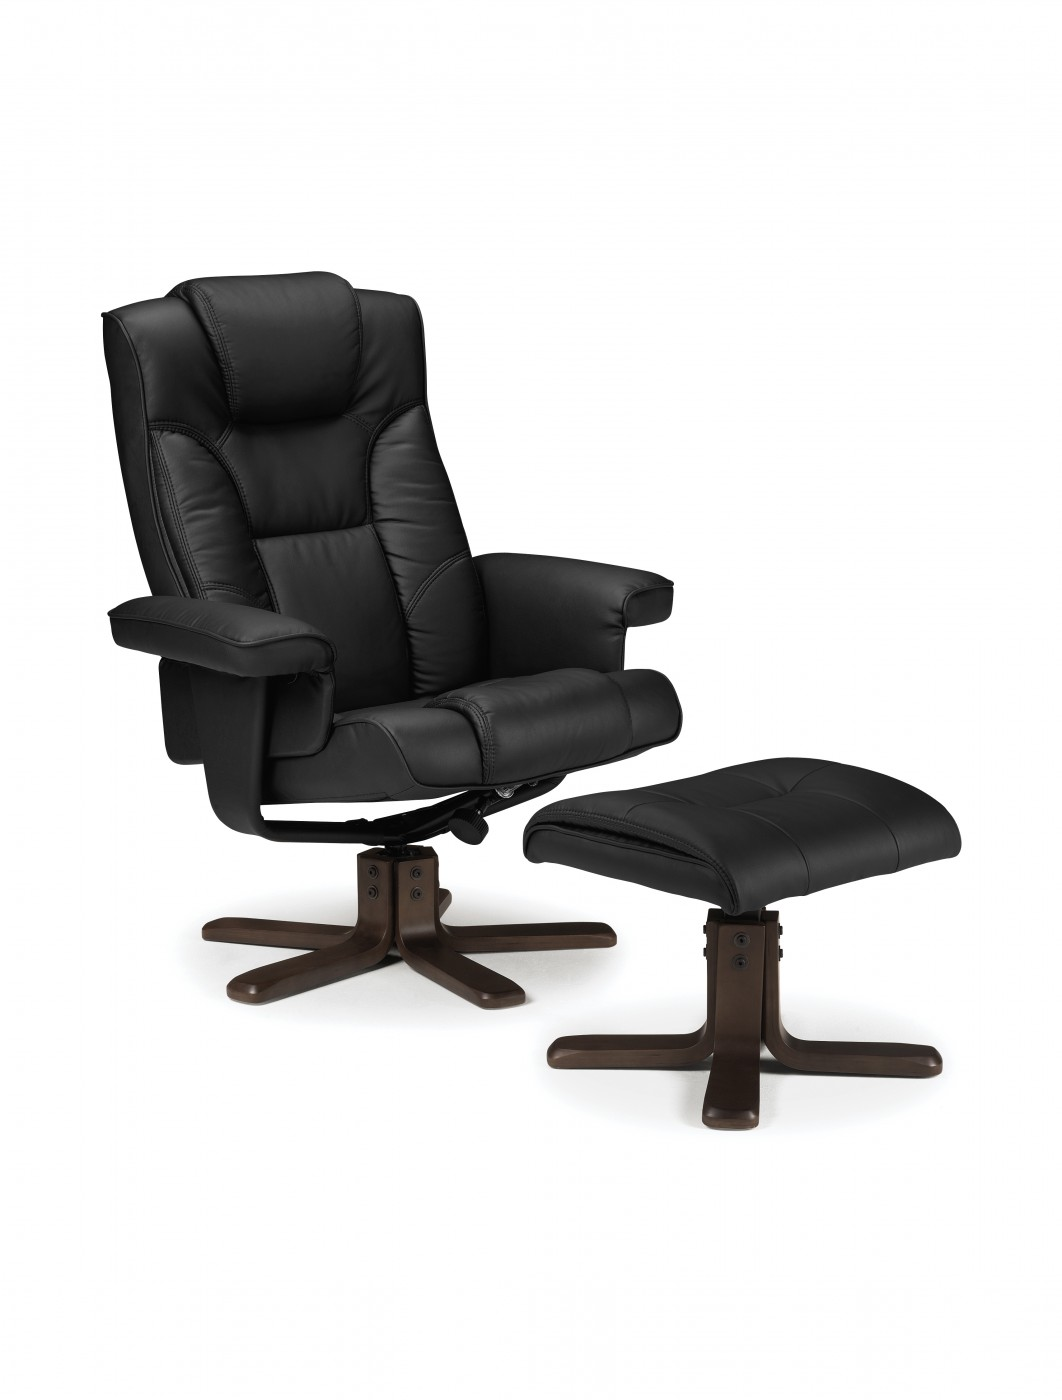 Swivel Recliner Chair Swivel Recliner Chair Mal001 121 Office Furniture